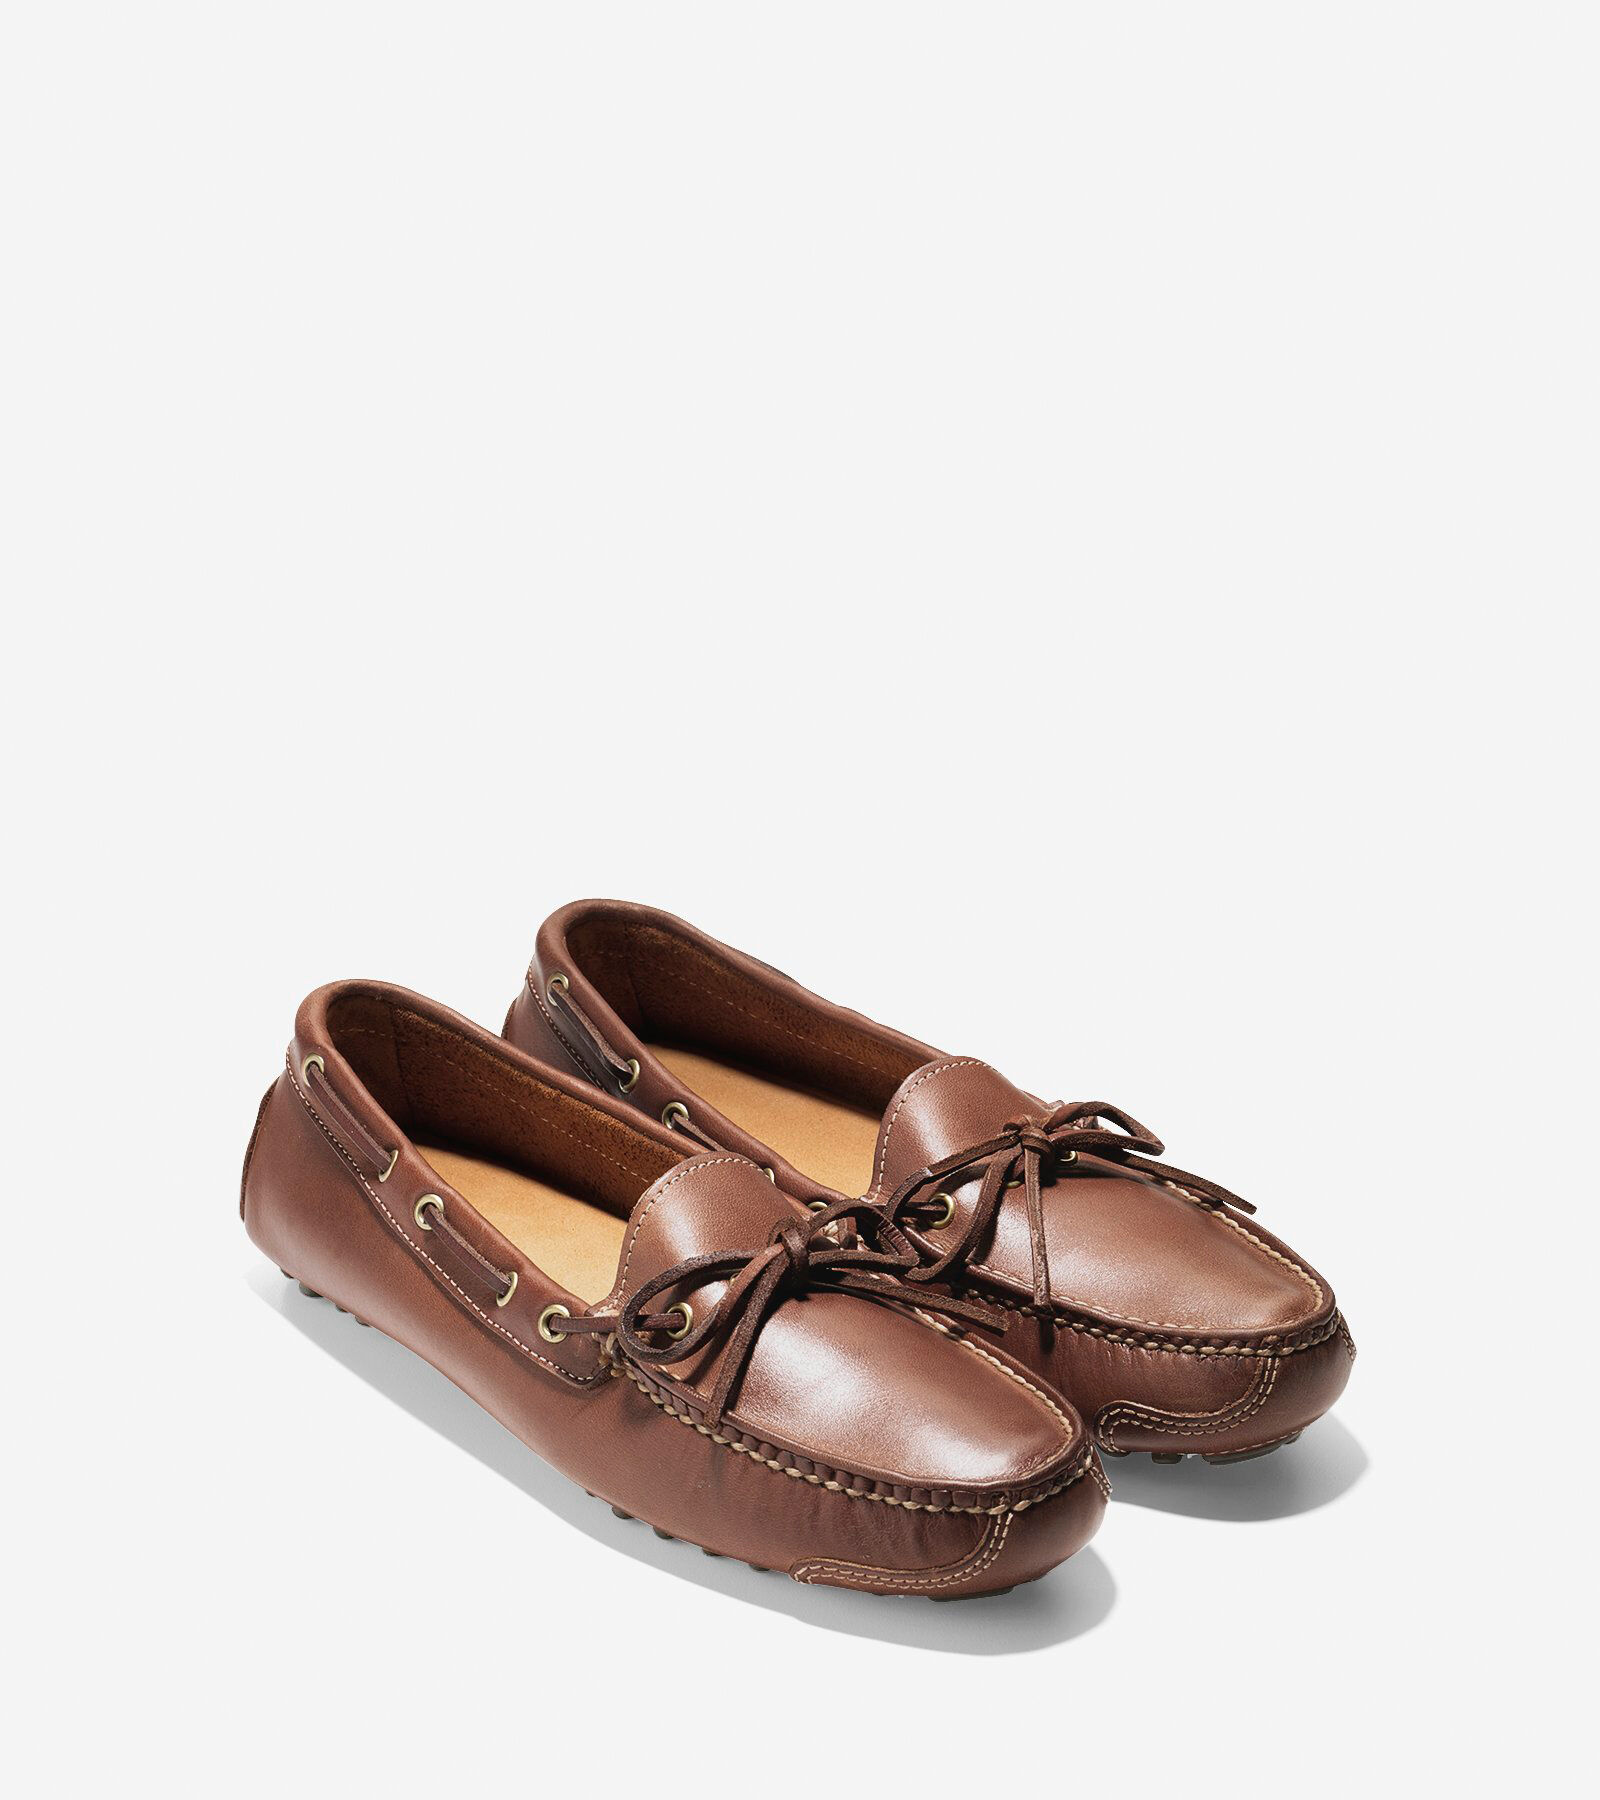 cole haan shoes gunnison brown wide fitting boots with fringes 7